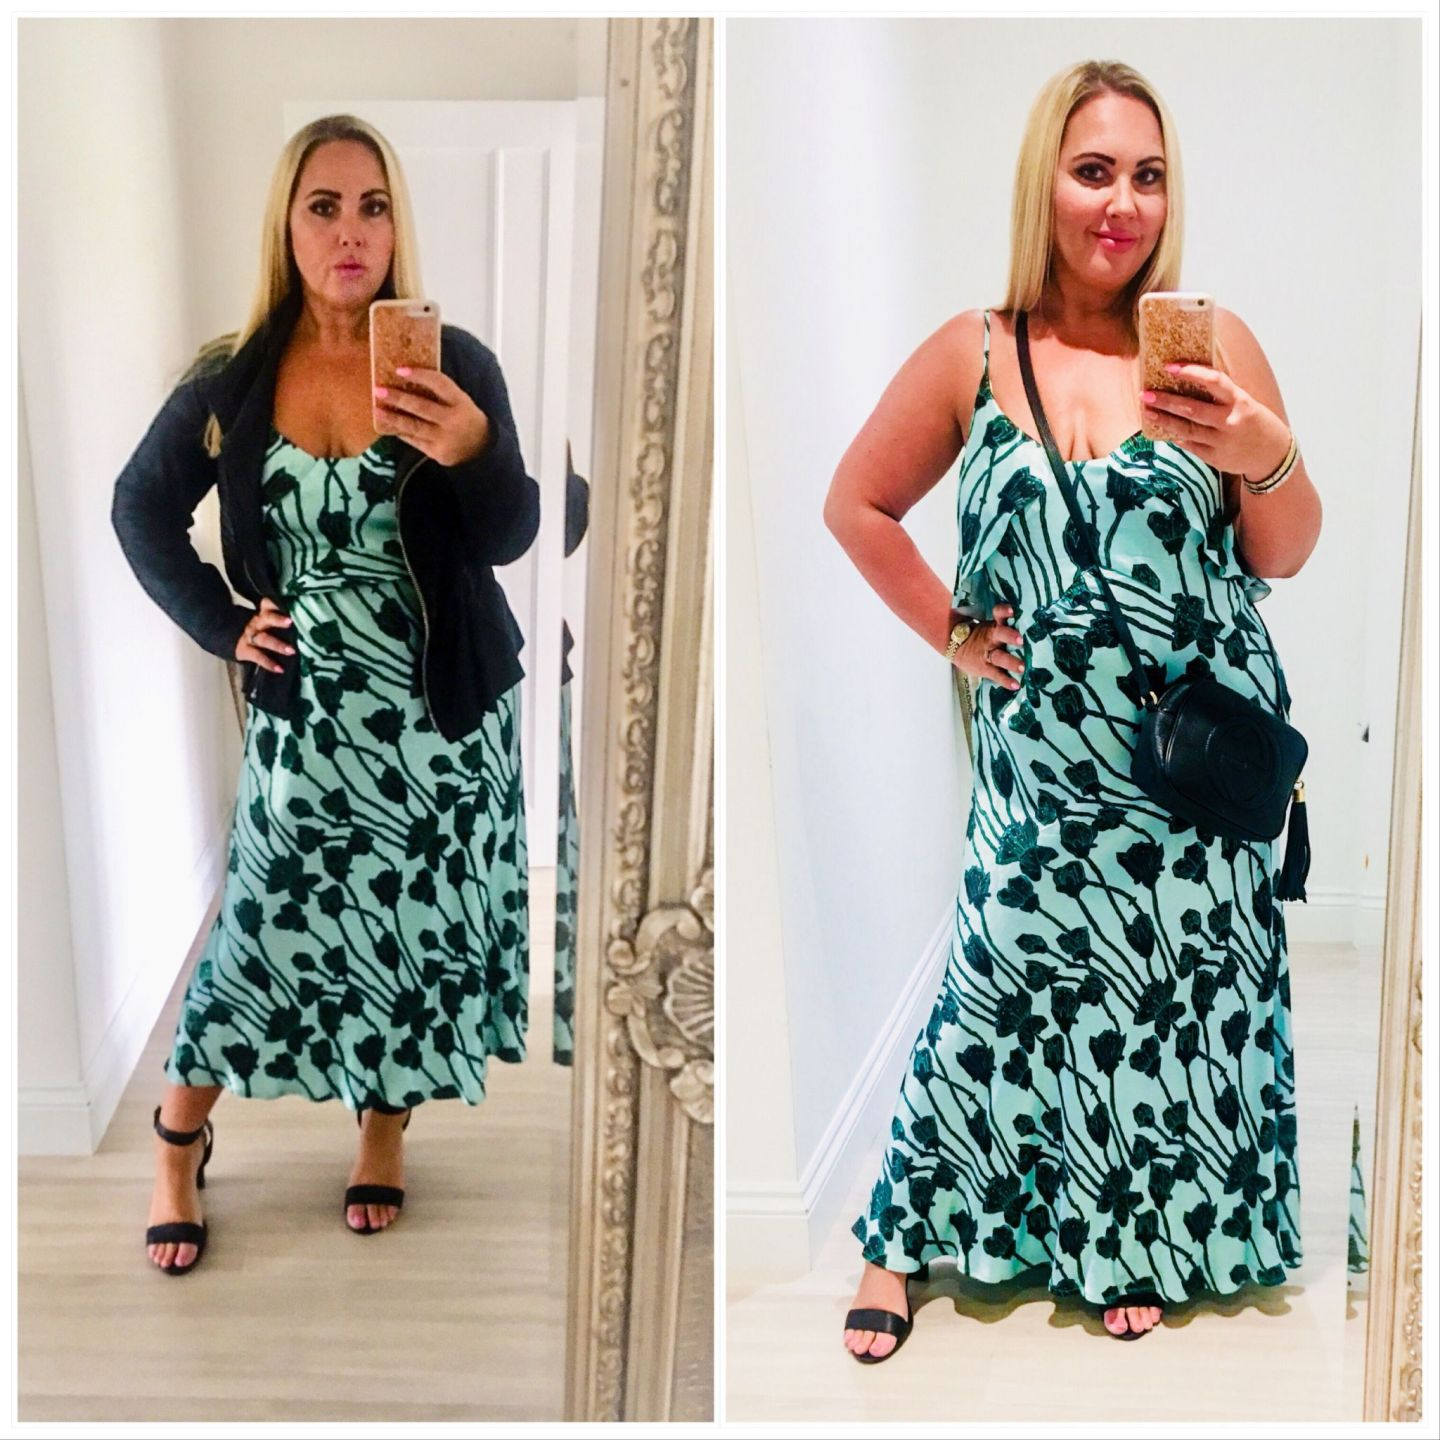 My Look for The Weekend outfits from high street brands